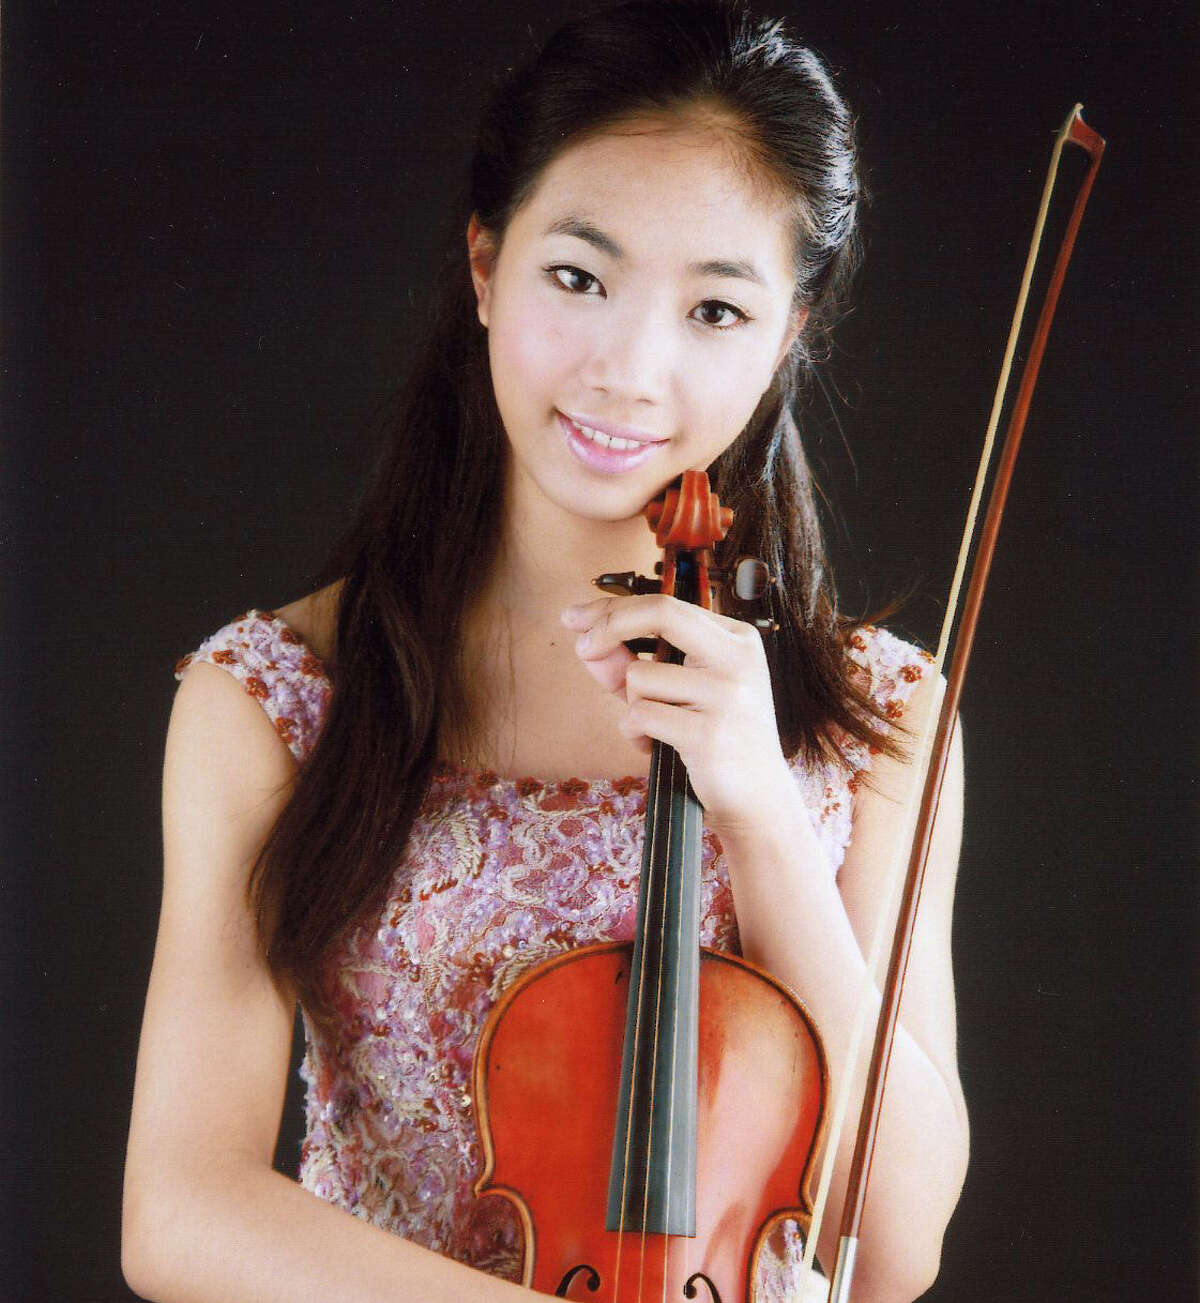 San Antonio's own Nancy Zhou, now based in Boston as a student and international performing artist, was the soloist for the Dvorák Violin Concerto during the San Antonio Symphony's Dvorák Festival on Saturday at the Majestic Theatre.